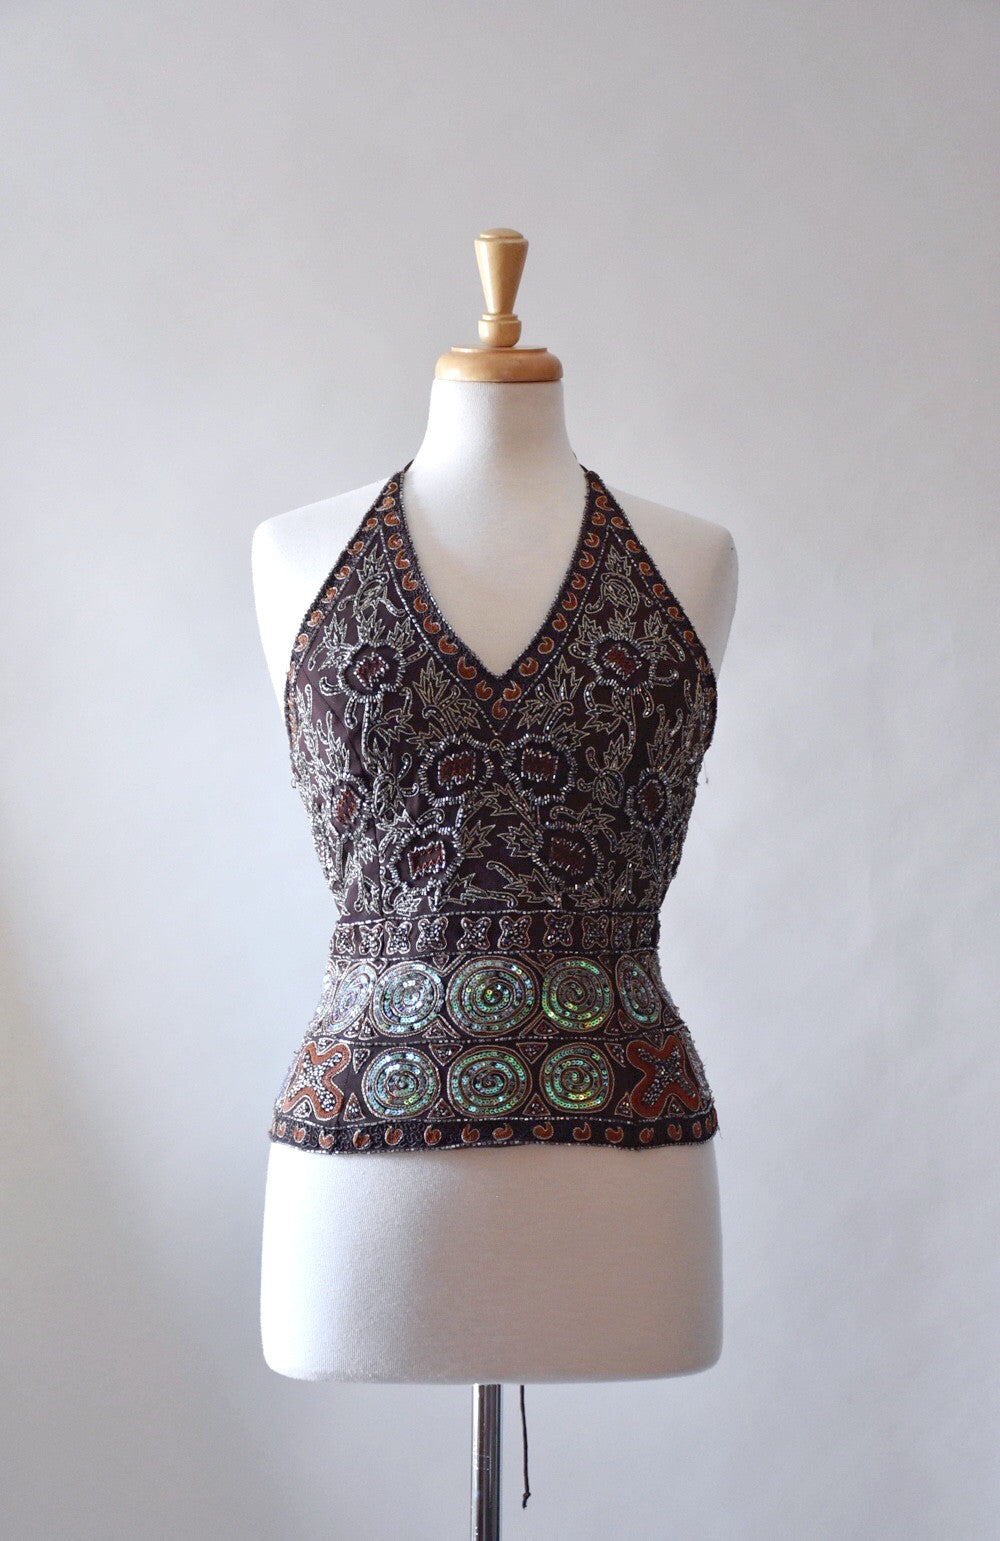 90s beaded halter top